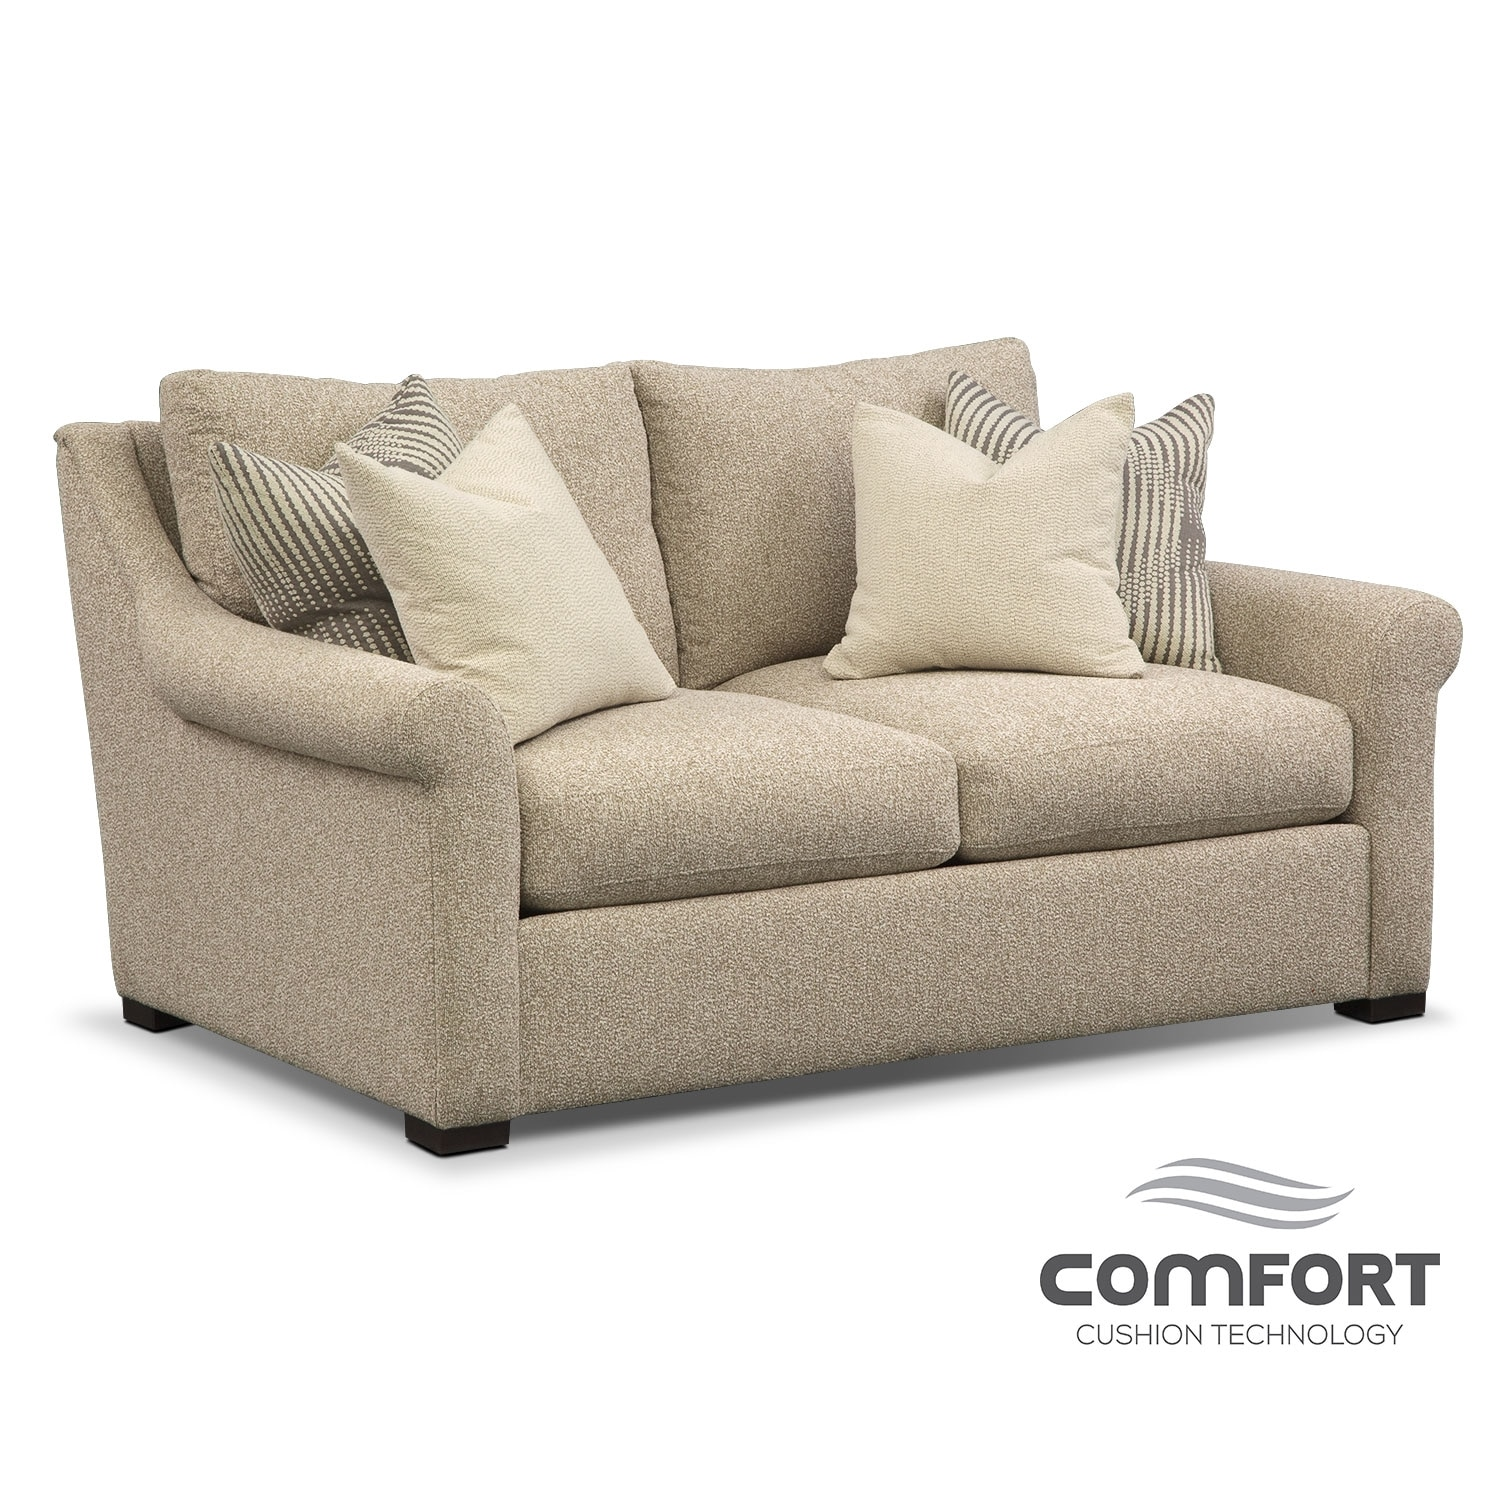 Living Room Furniture - Robertson Comfort Loveseat